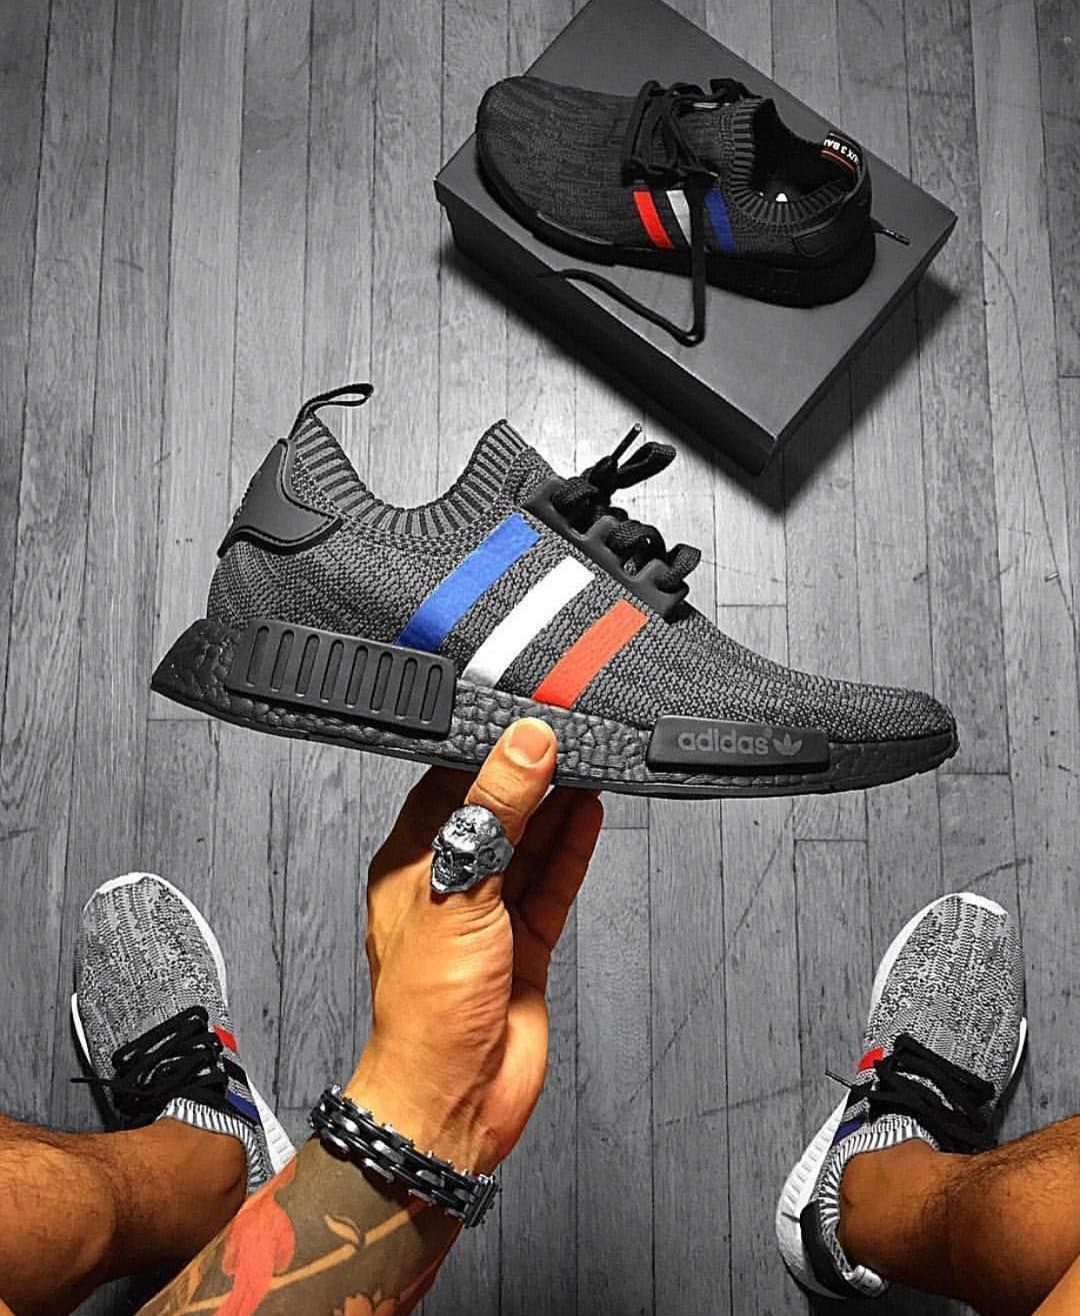 9e885f70de6c2 adidas NMD R1 Primeknit Tri-Color Pack with custom colored boost soles (  those M-like colours)